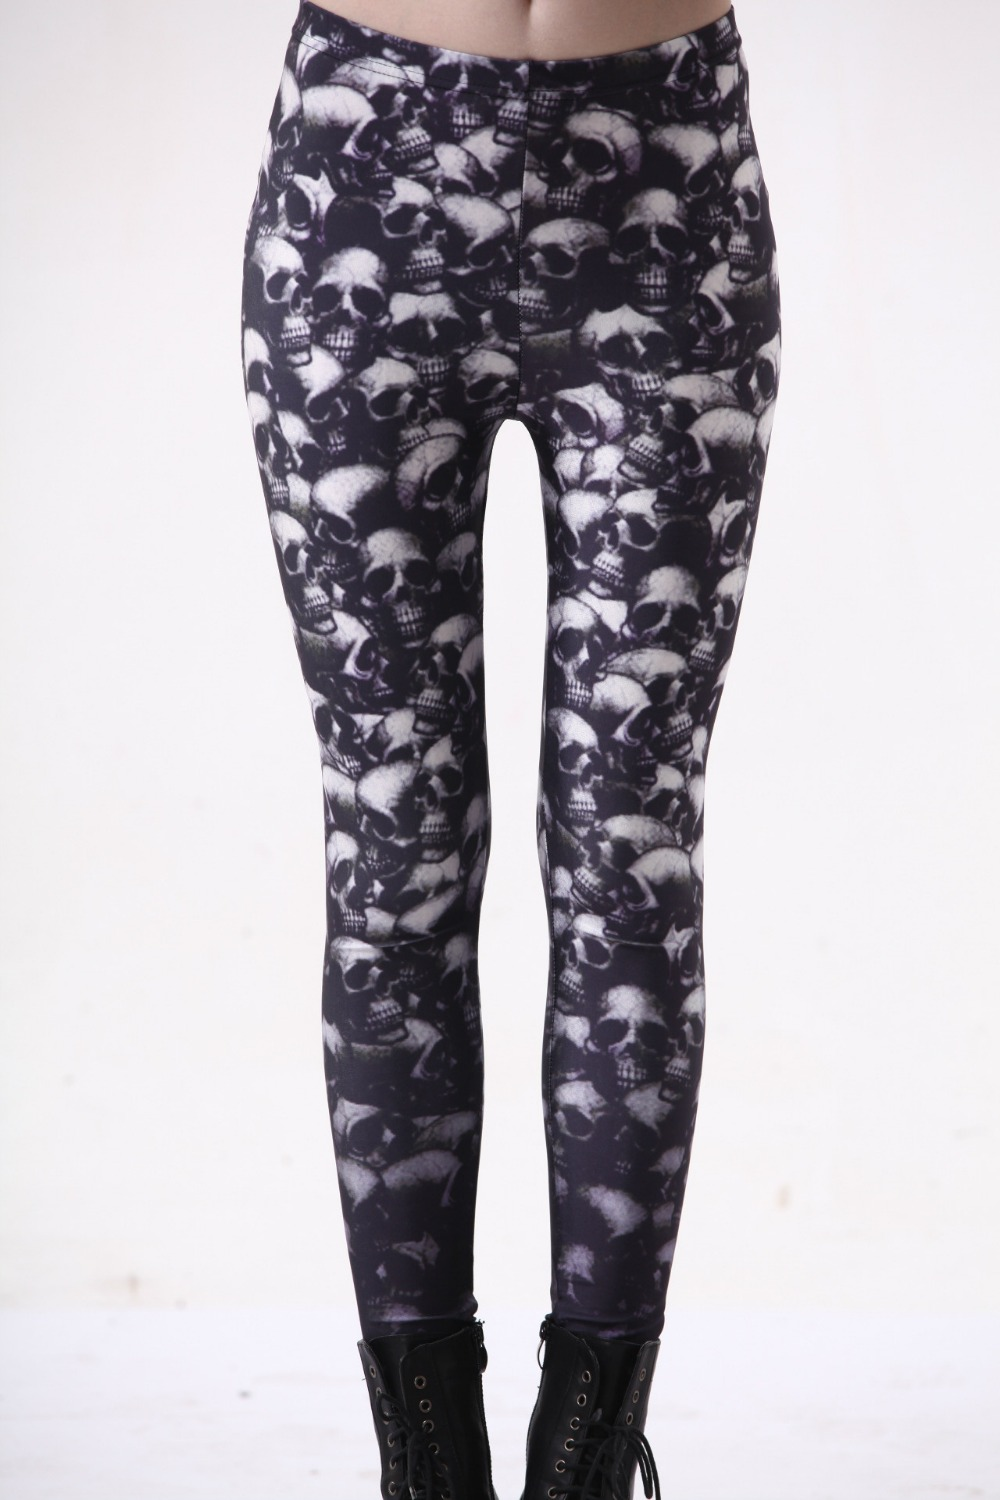 Fashion Women Piles of Skulls Print Leggings Slim Fit Thin Elastic Polyester Cos Party Pants Casual Trousers Drop Shipping